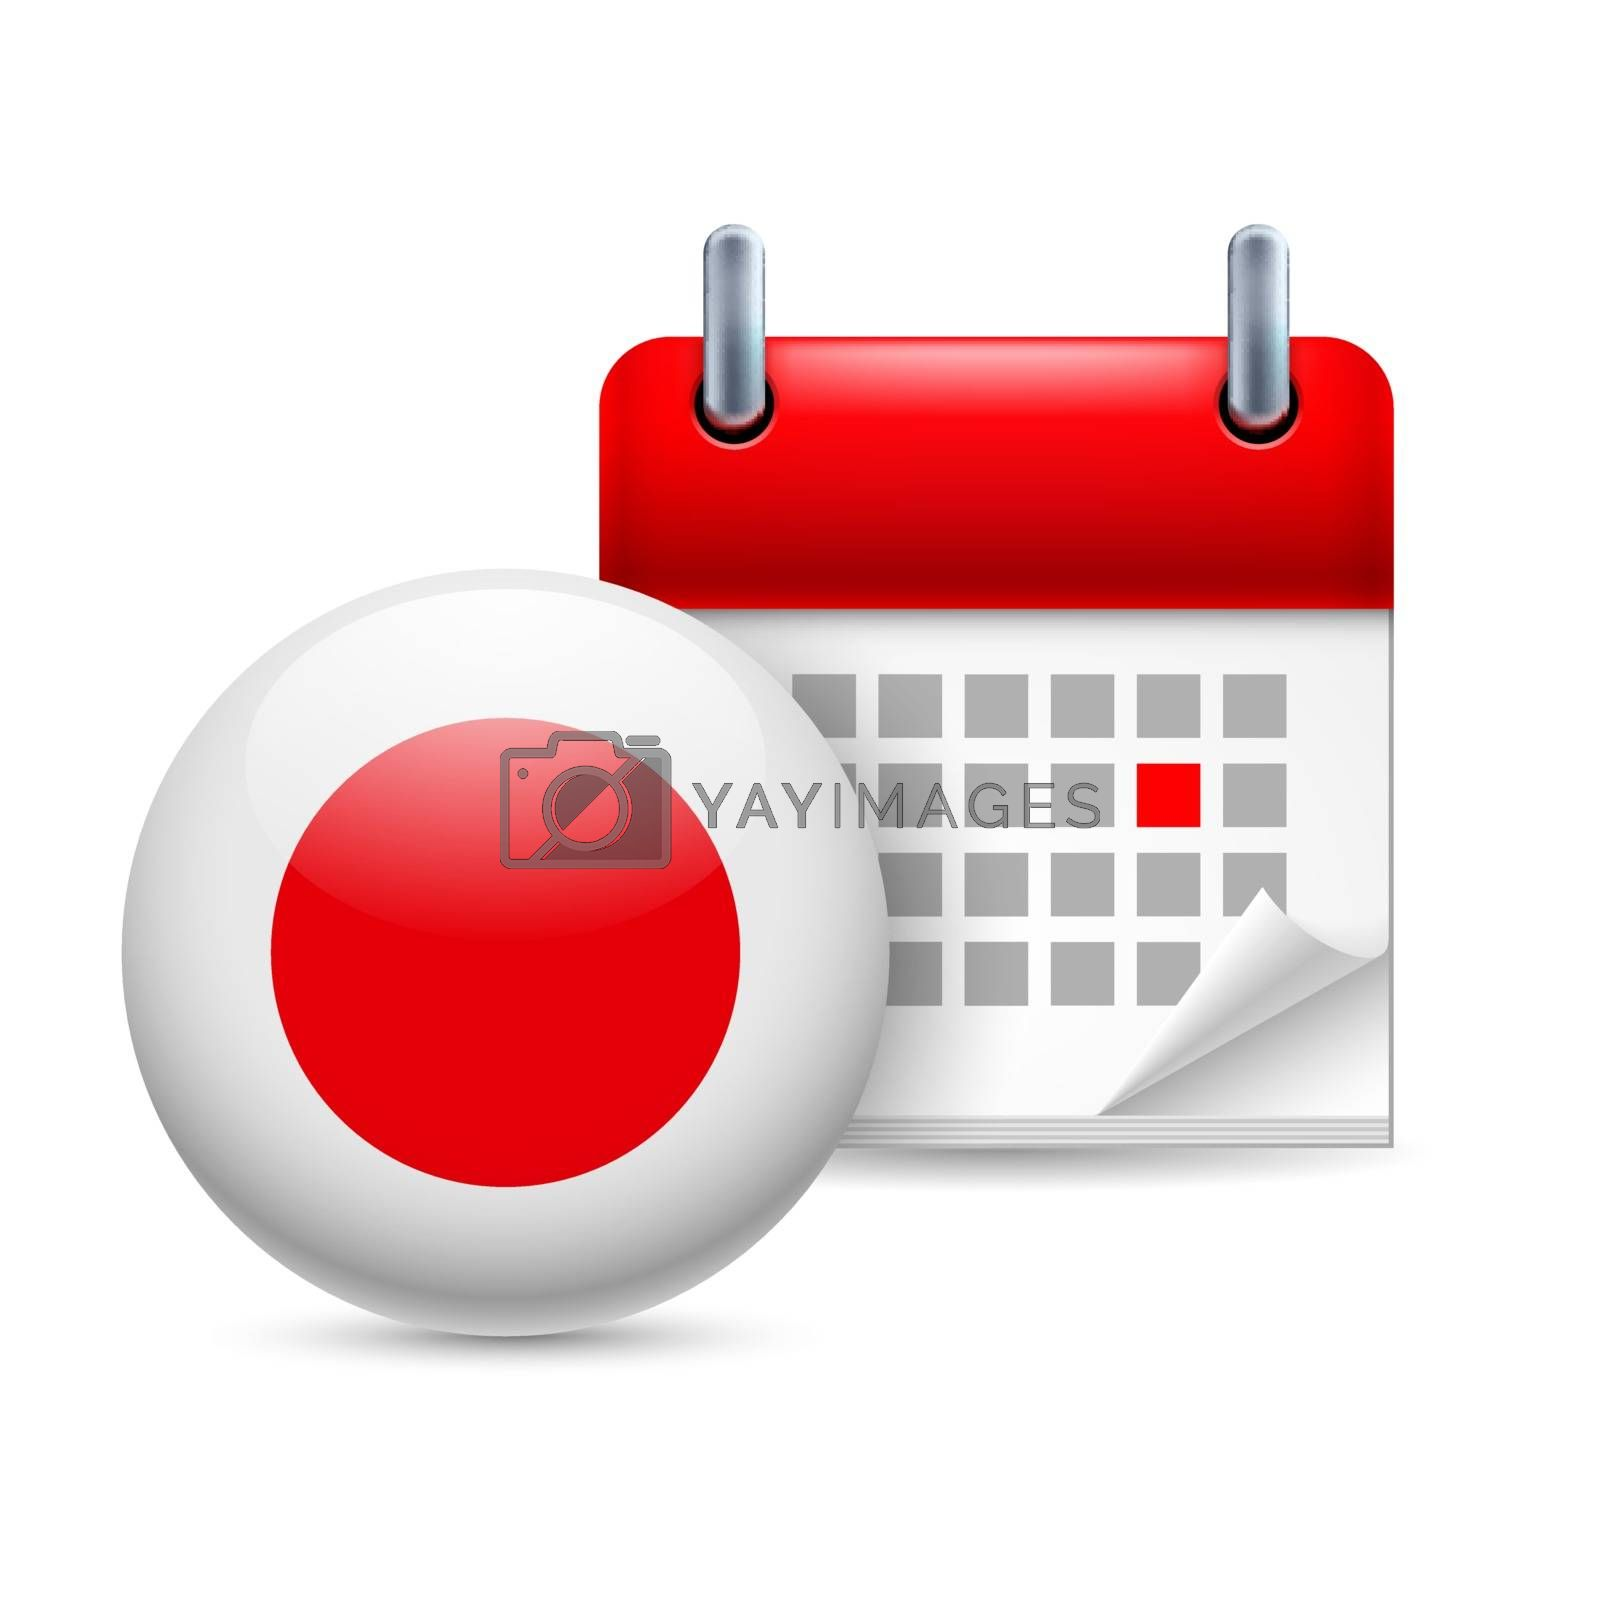 Royalty free image of Icon of National Day in Japan by dvarg